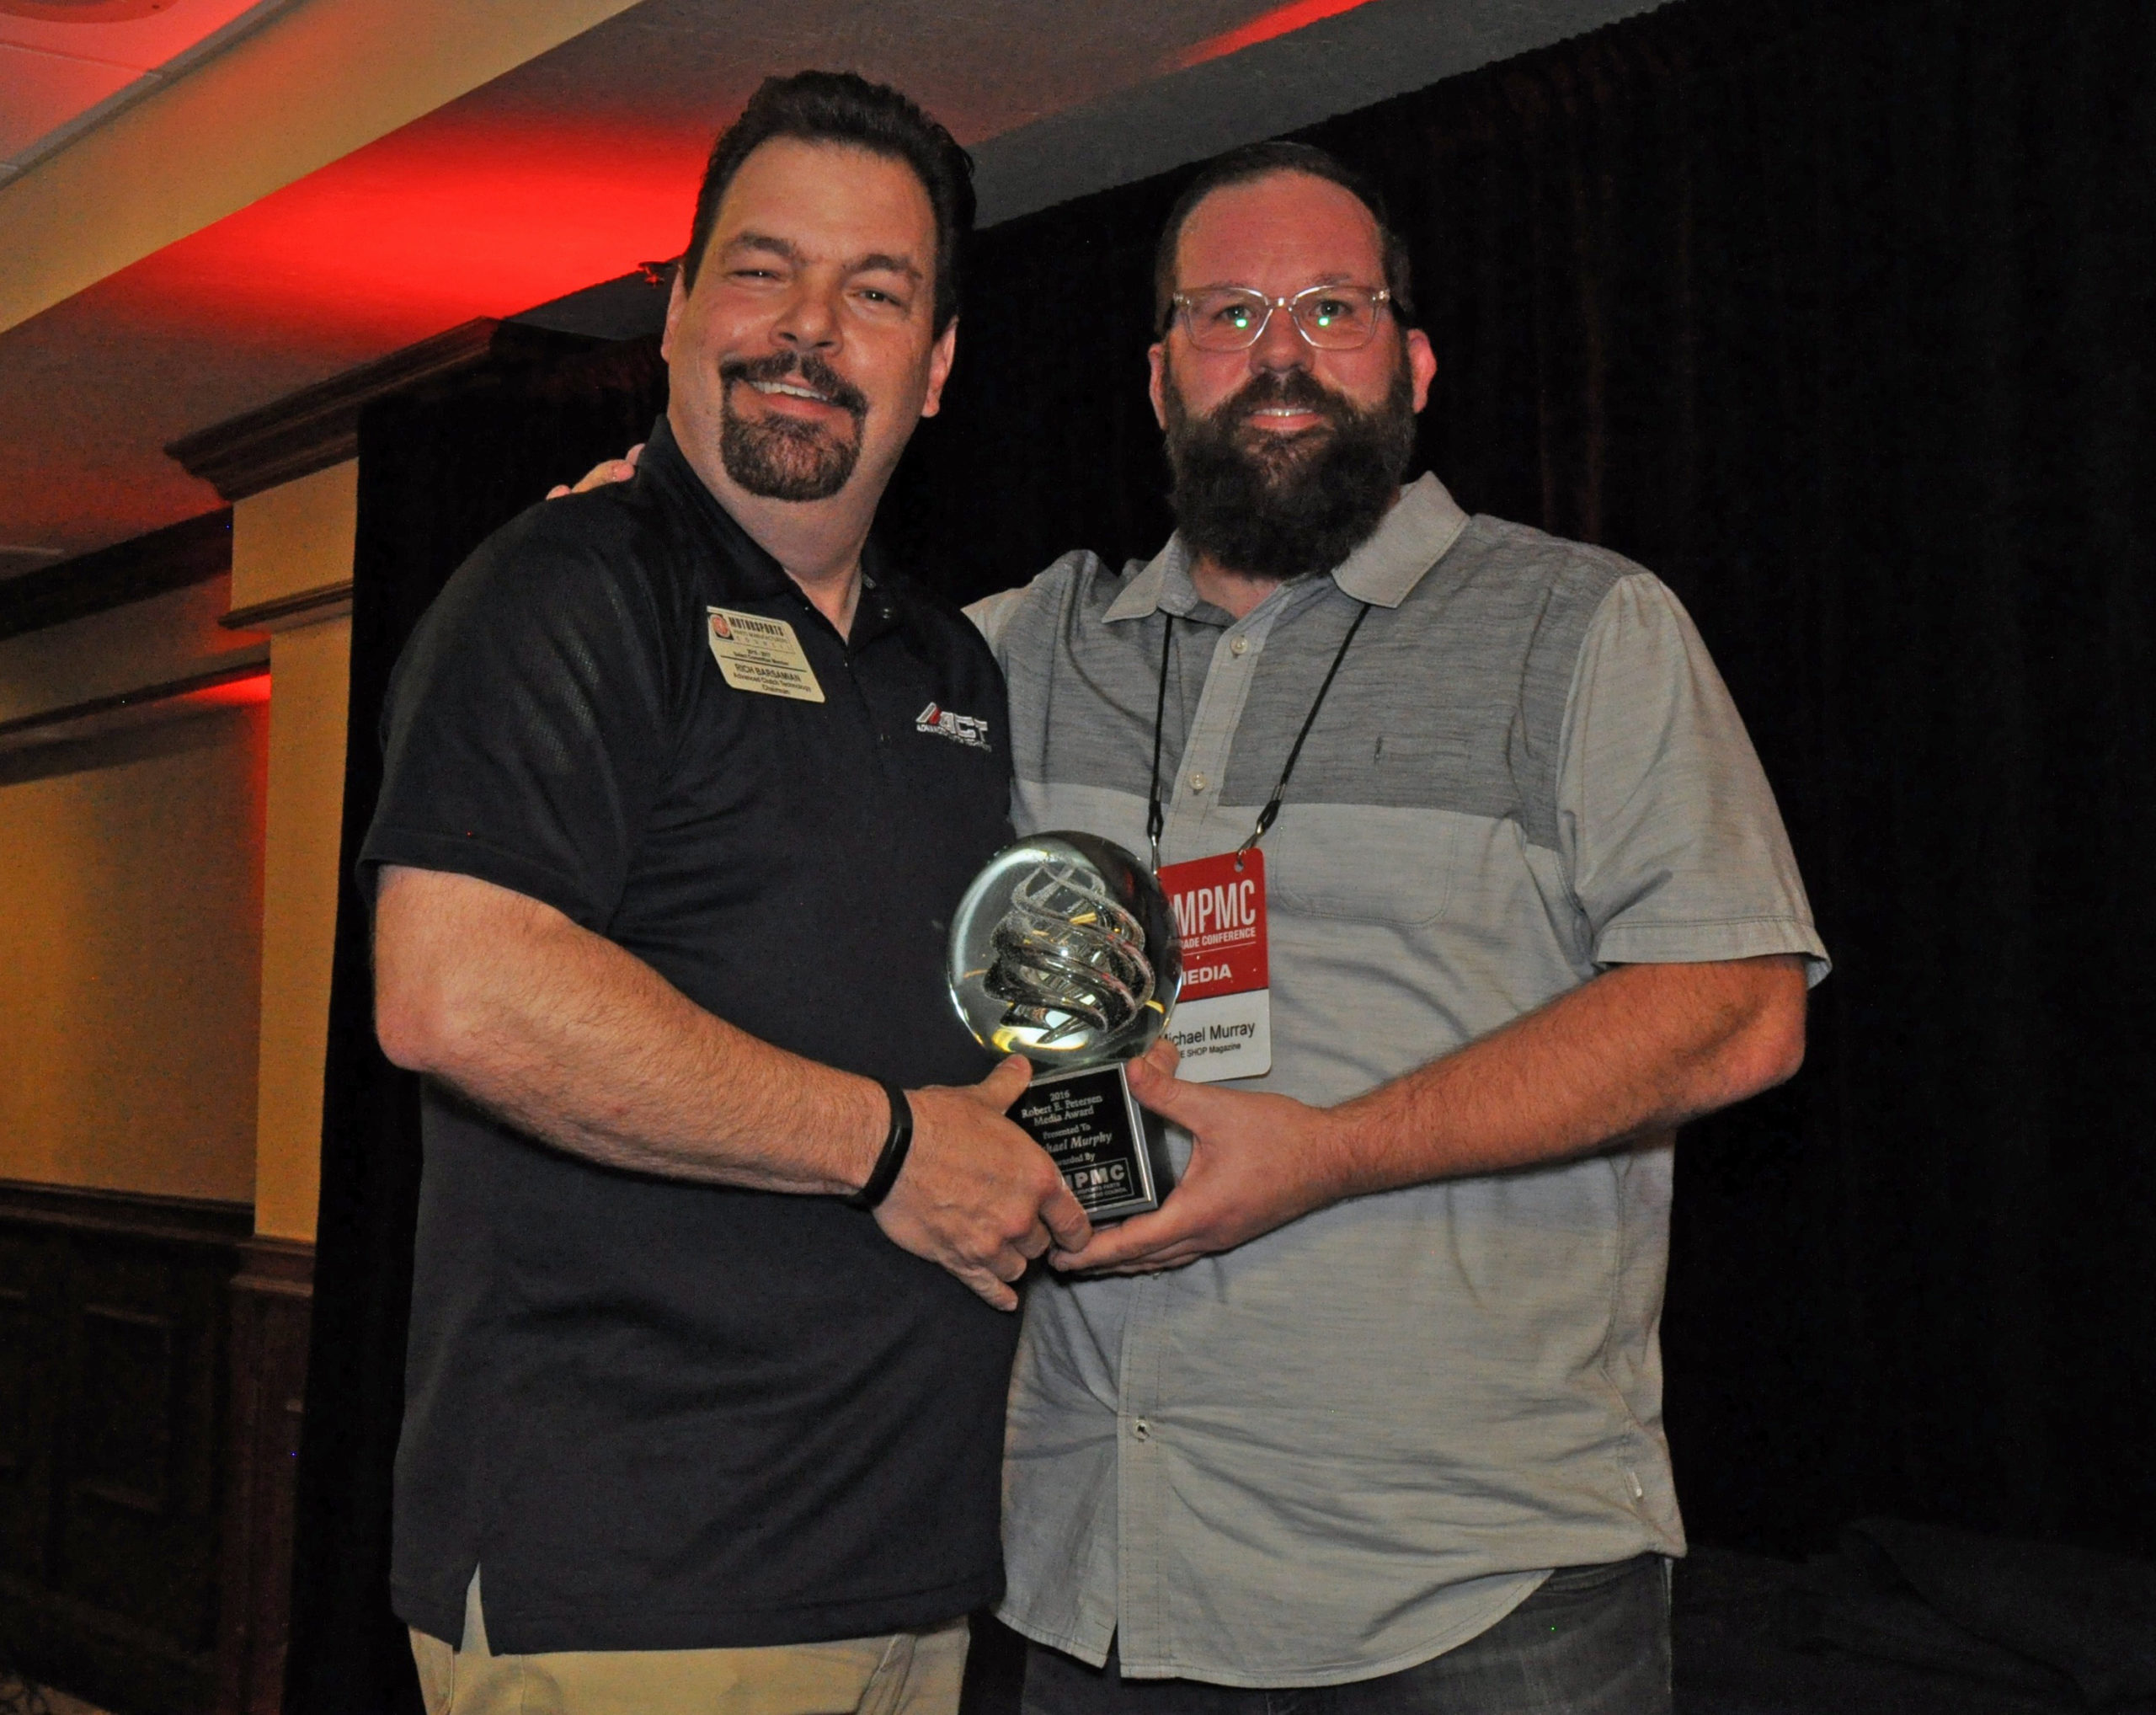 Michael Murray (right), associate publisher of THE SHOP magazine, accepts the Robert E. Pertersen award trophy from MPMC Chair R